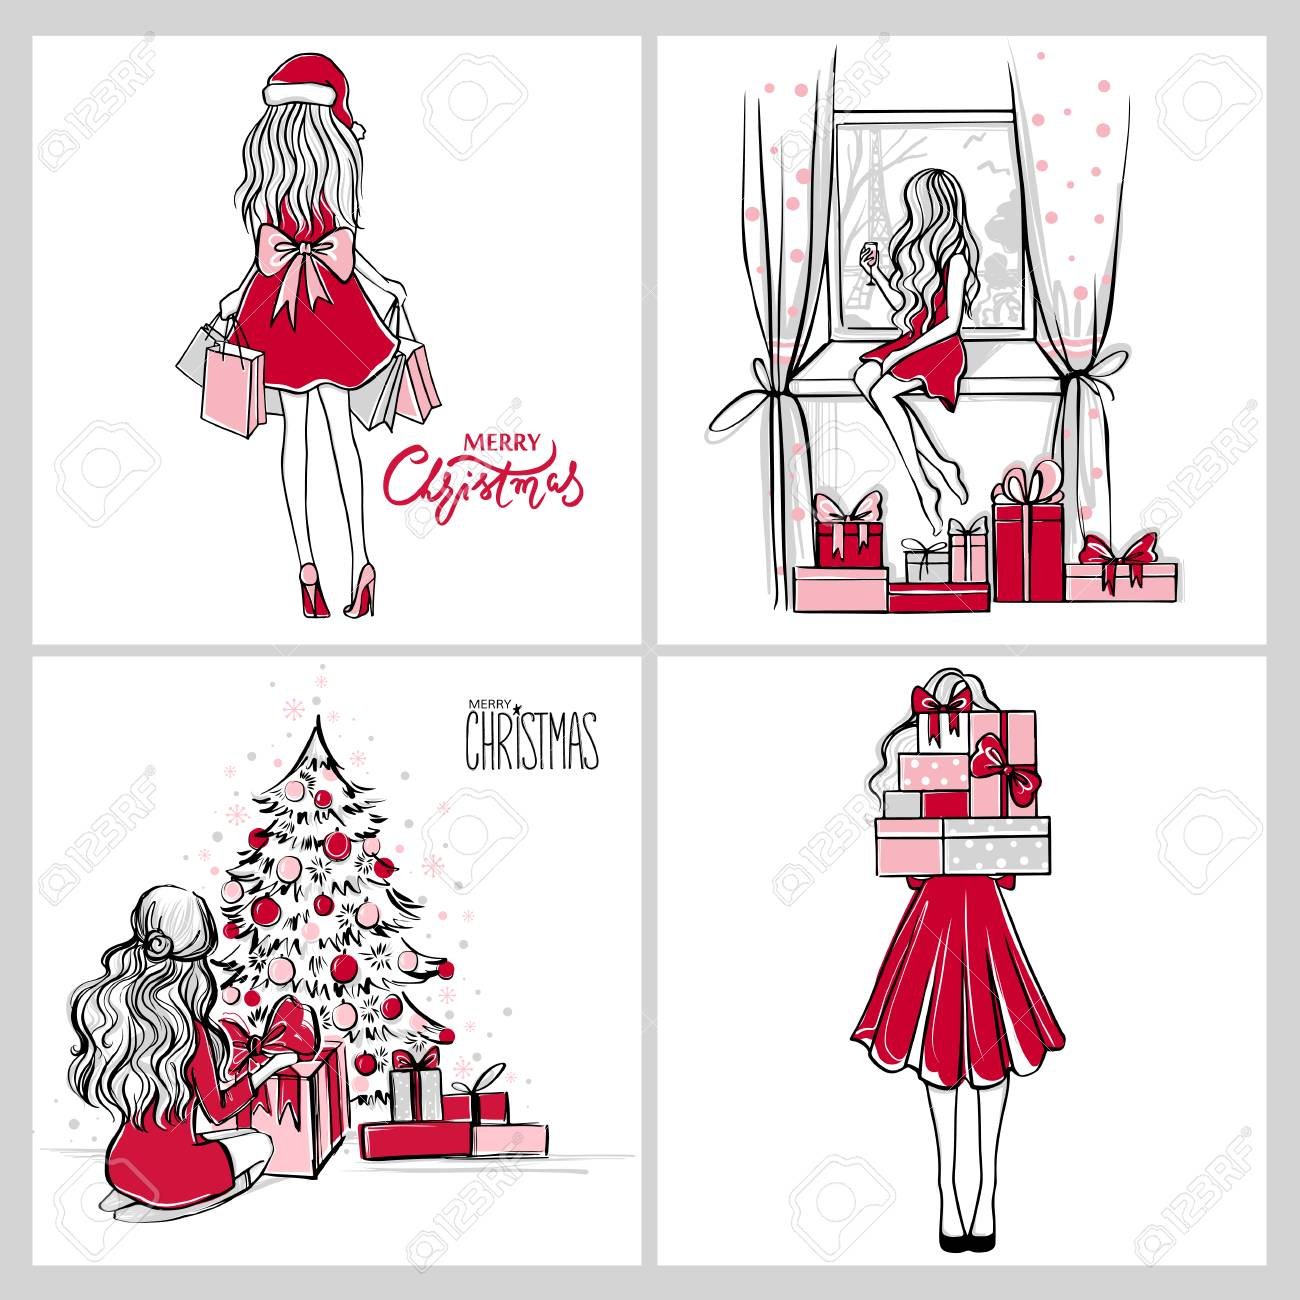 Merry Christmas Illustration.Merry Christmas And Happy New Year Vector Cards Xmas Illustration